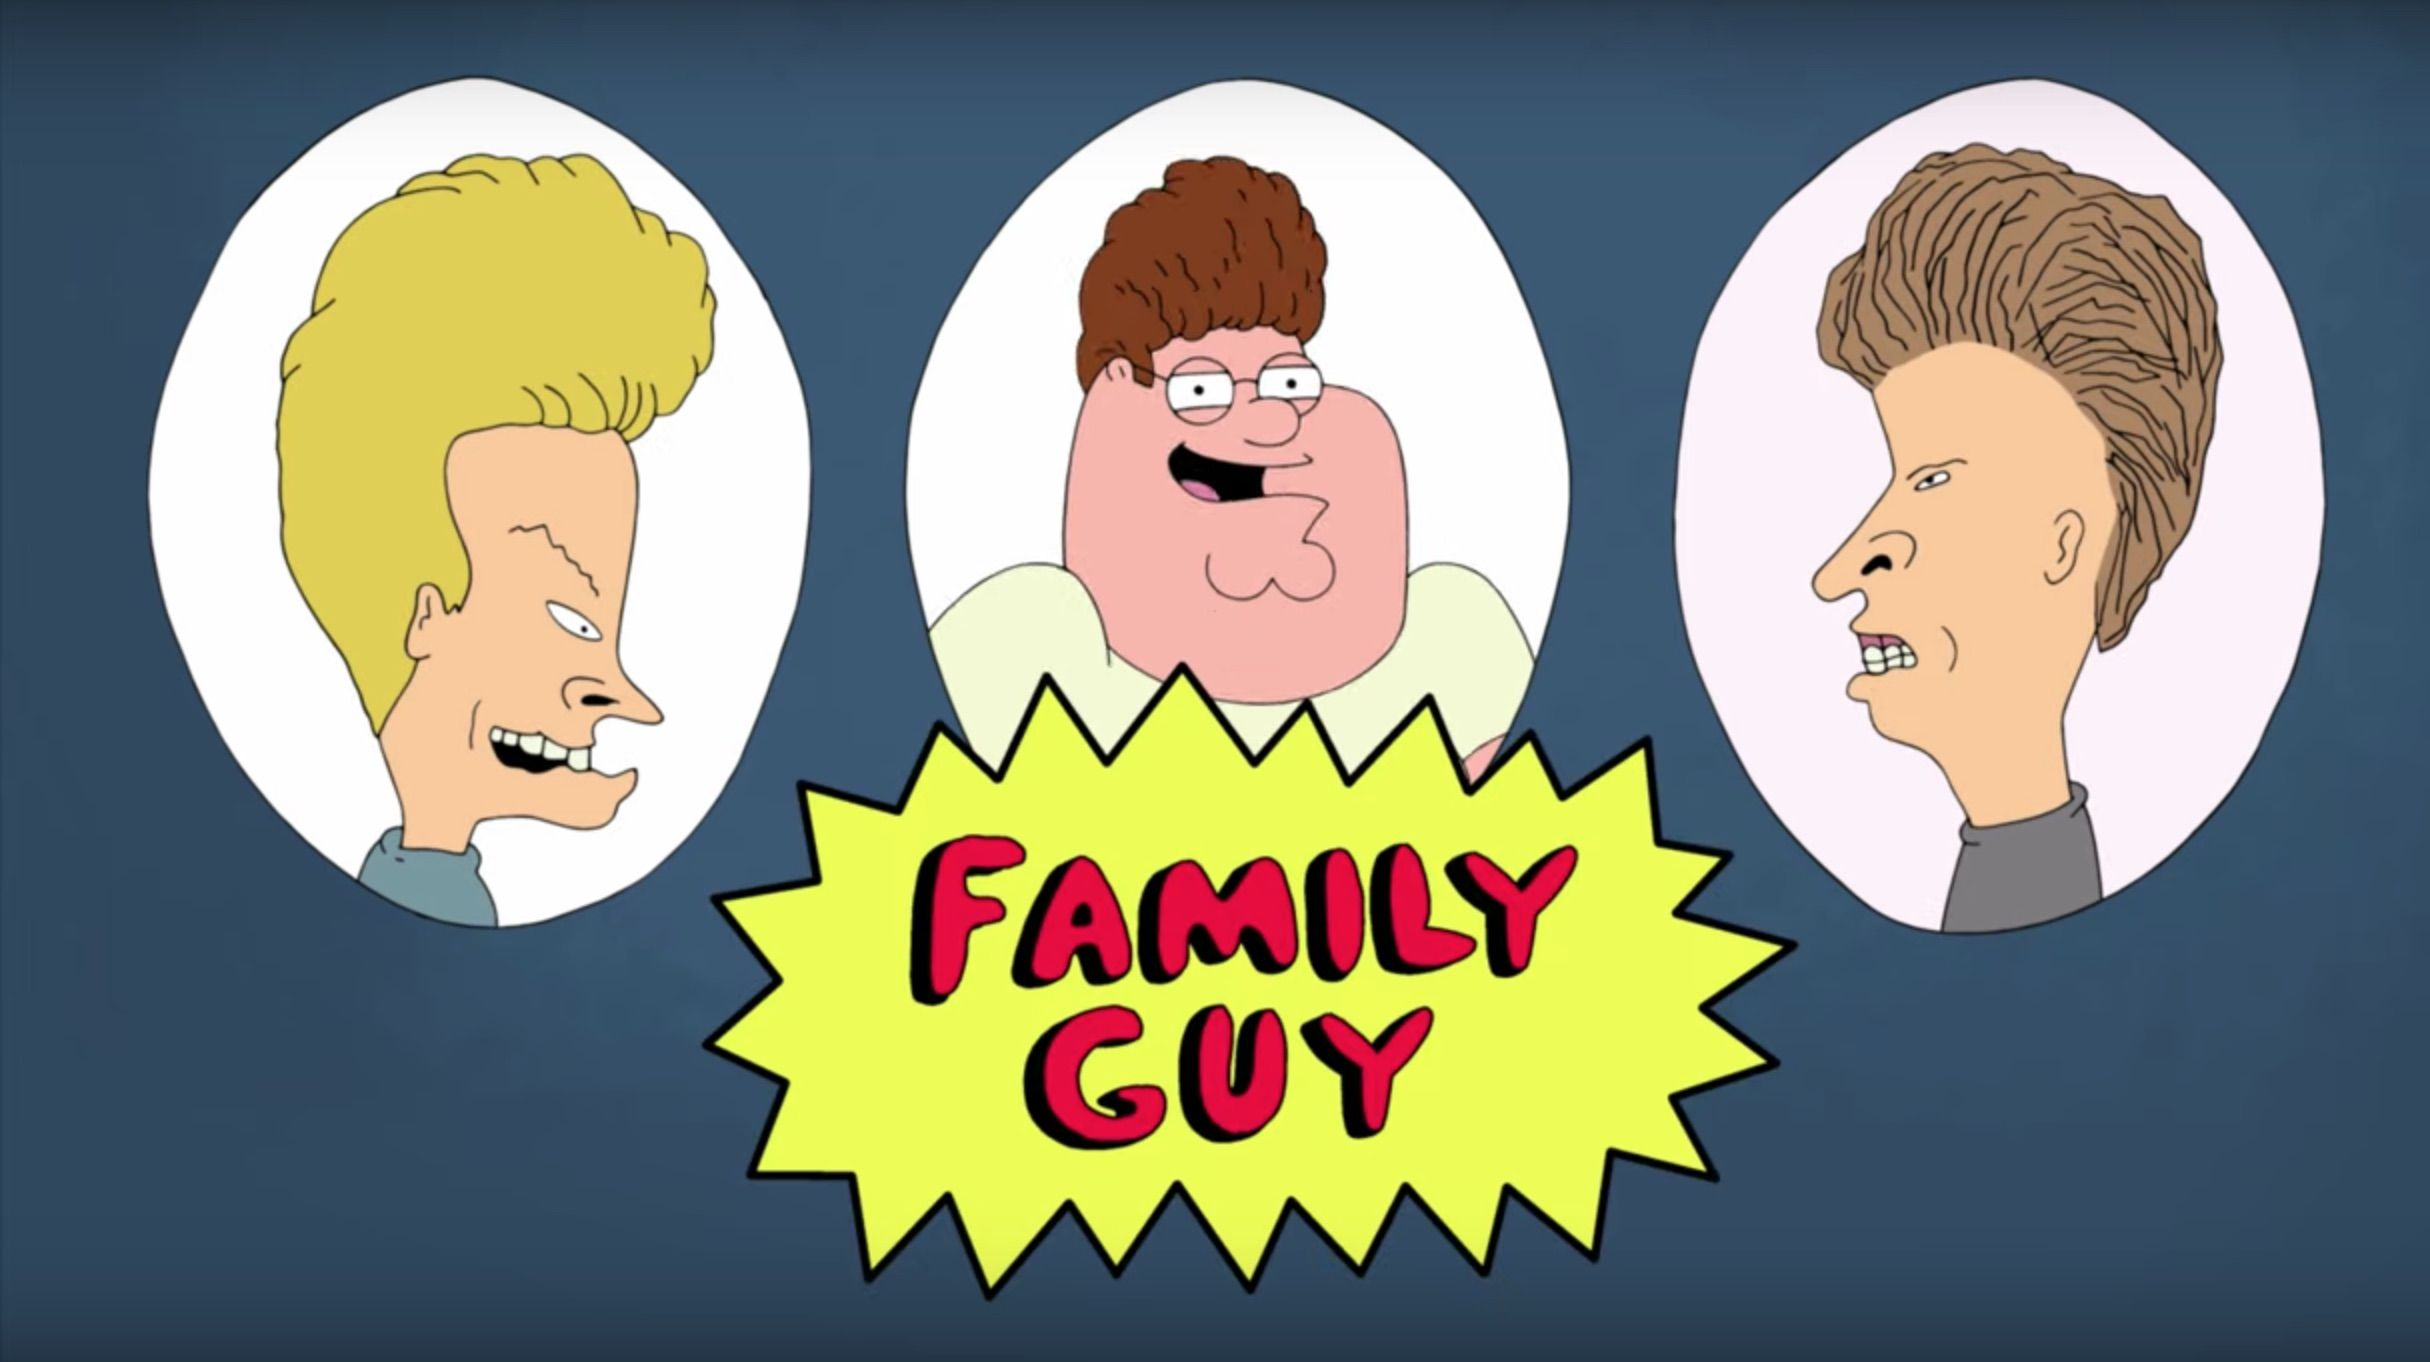 Family Guy season 18 first-look trailer reveals Beavis and Butt-Head crossover